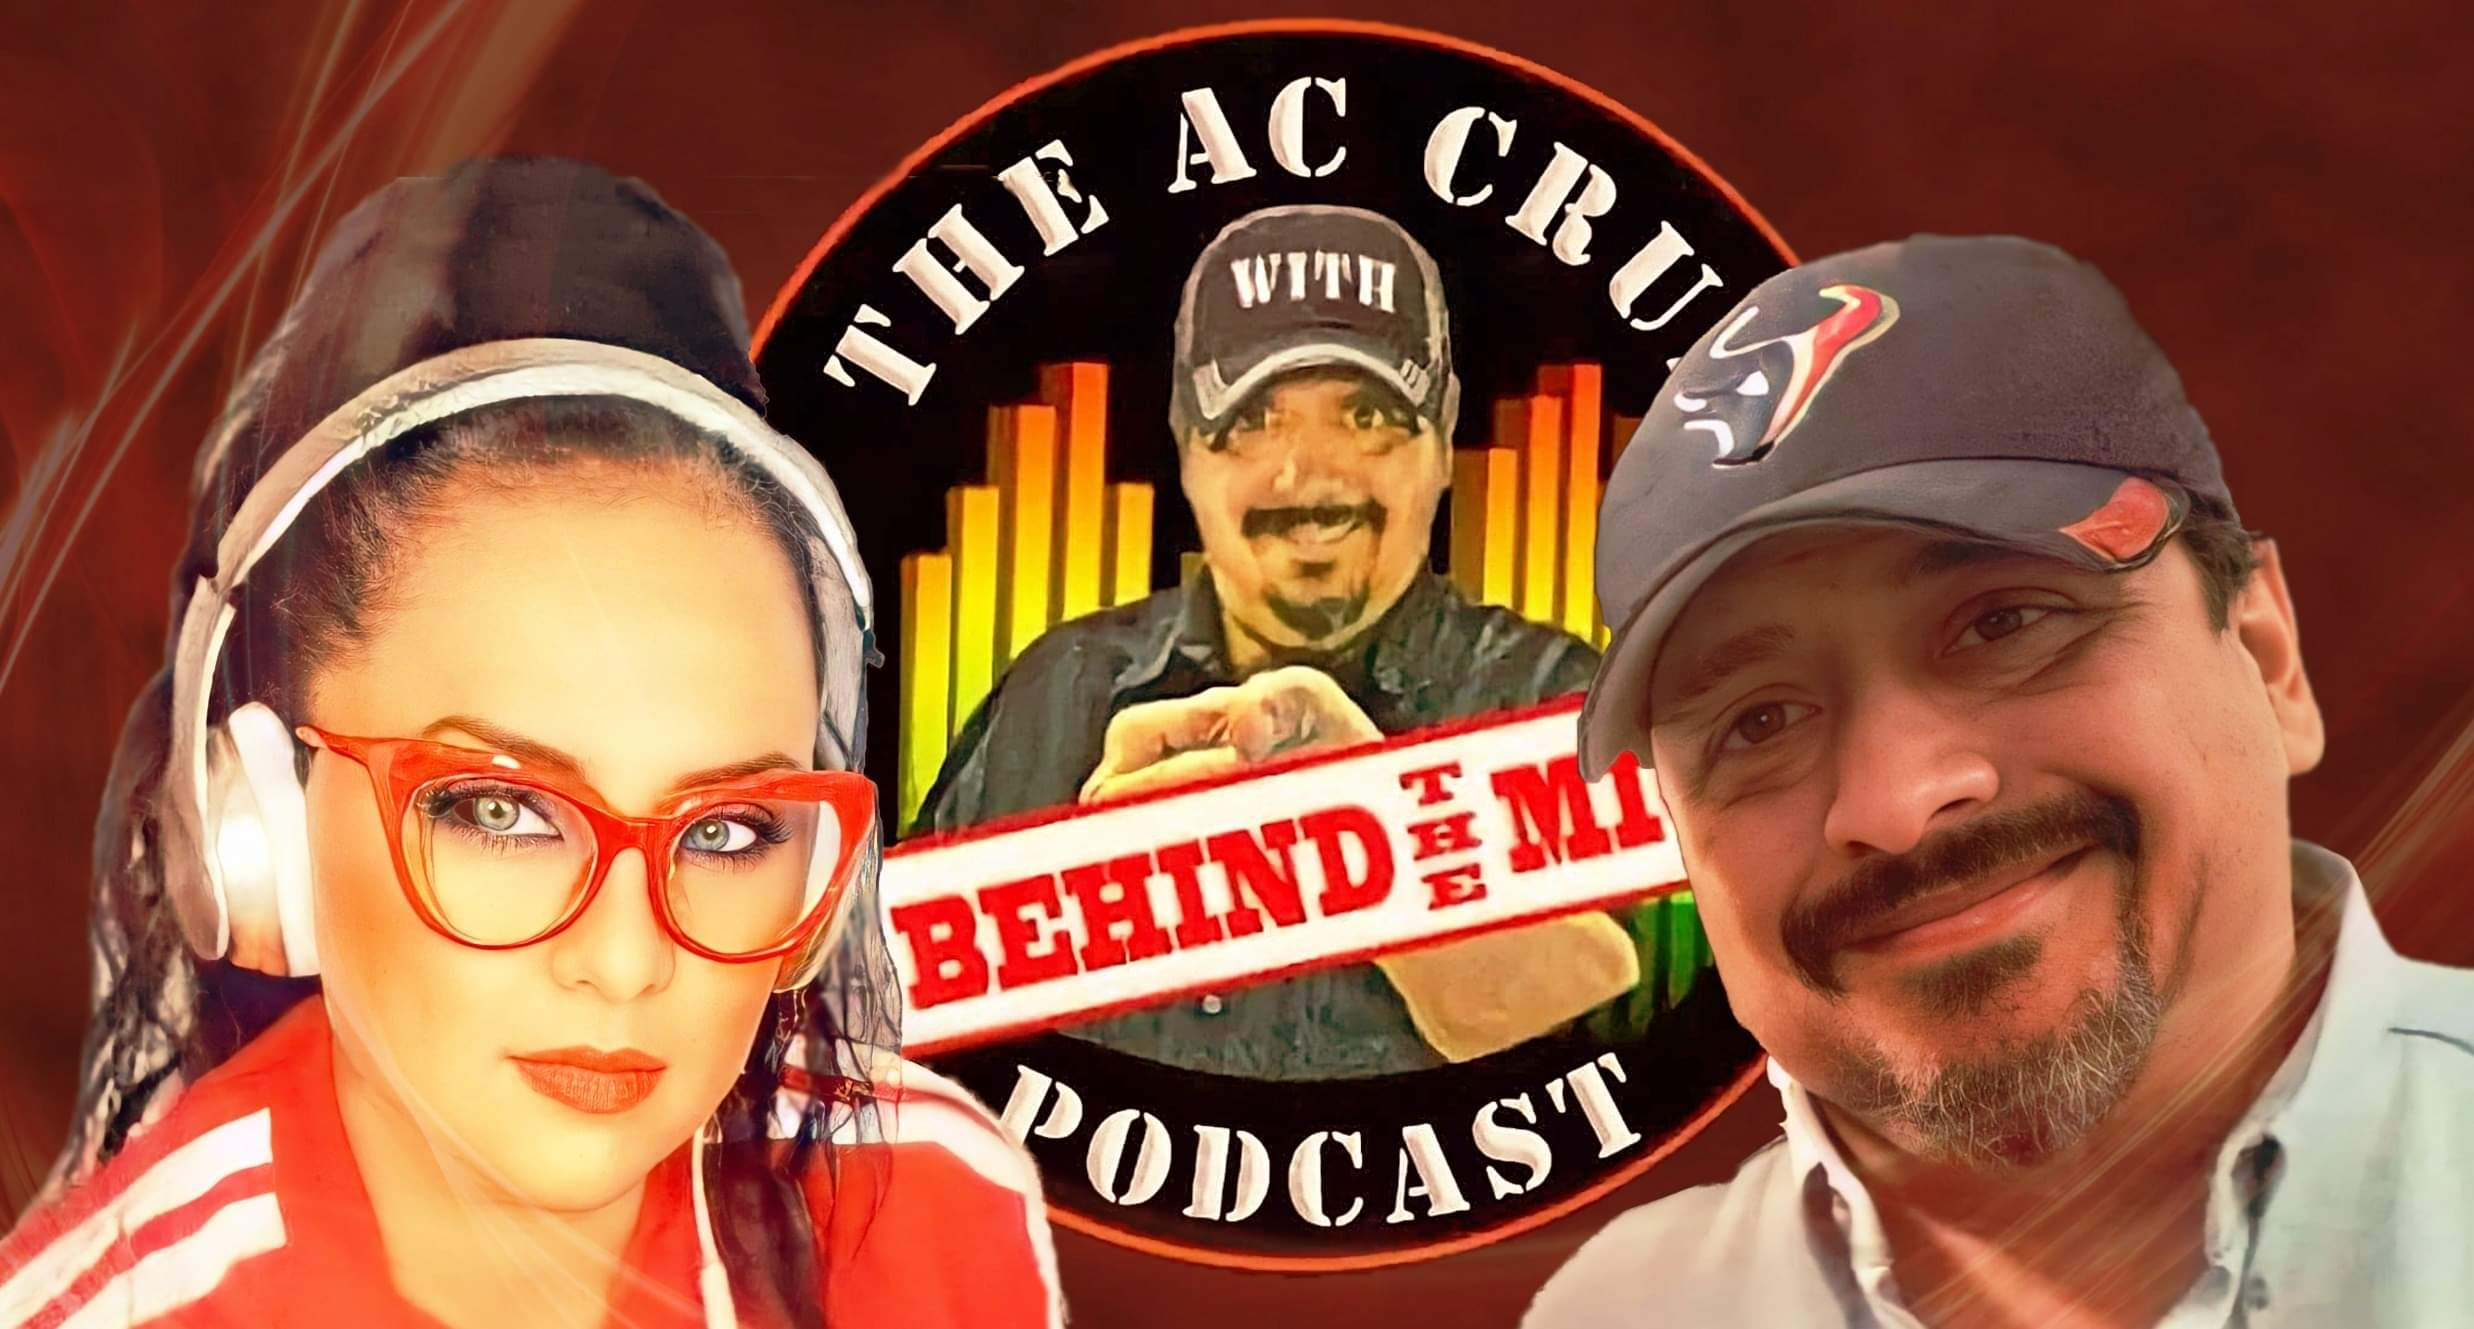 Behind The Mic with Shelly Lares